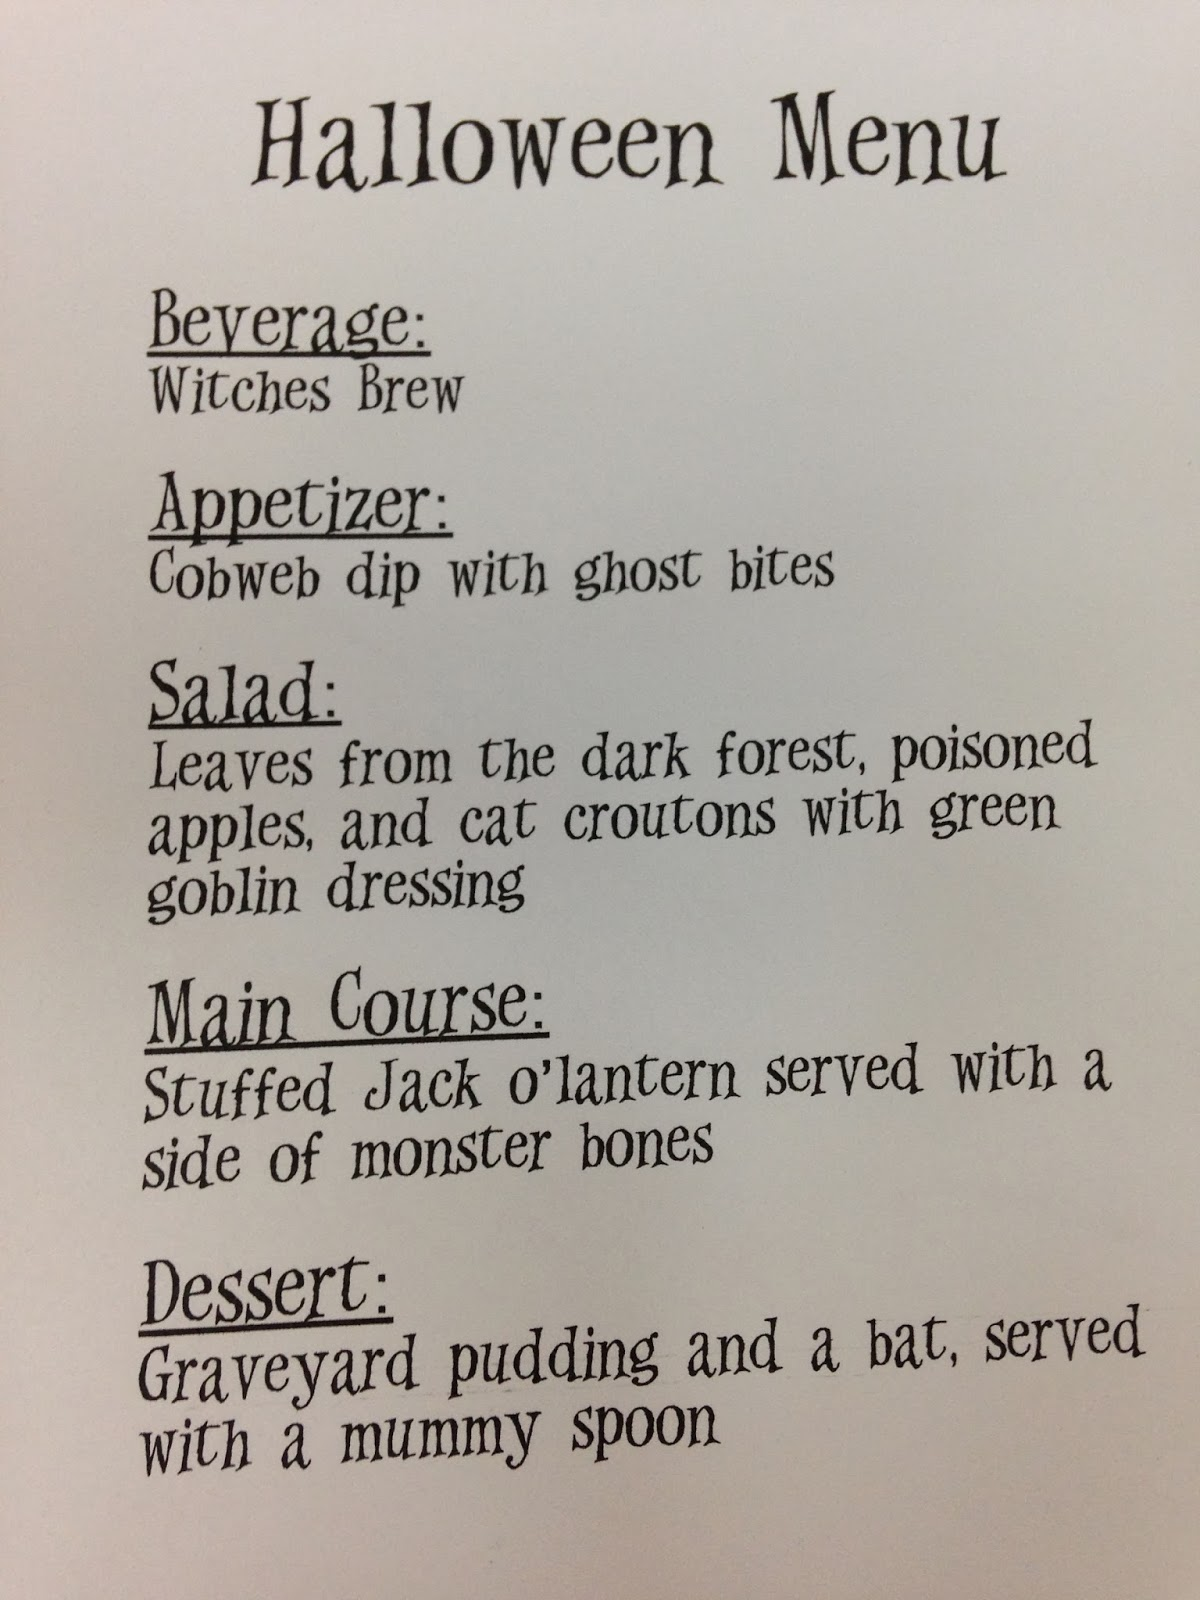 we celebrated halloween this year by having a spooky dinner i set up a place for my husband and i at the table and gave him this menu